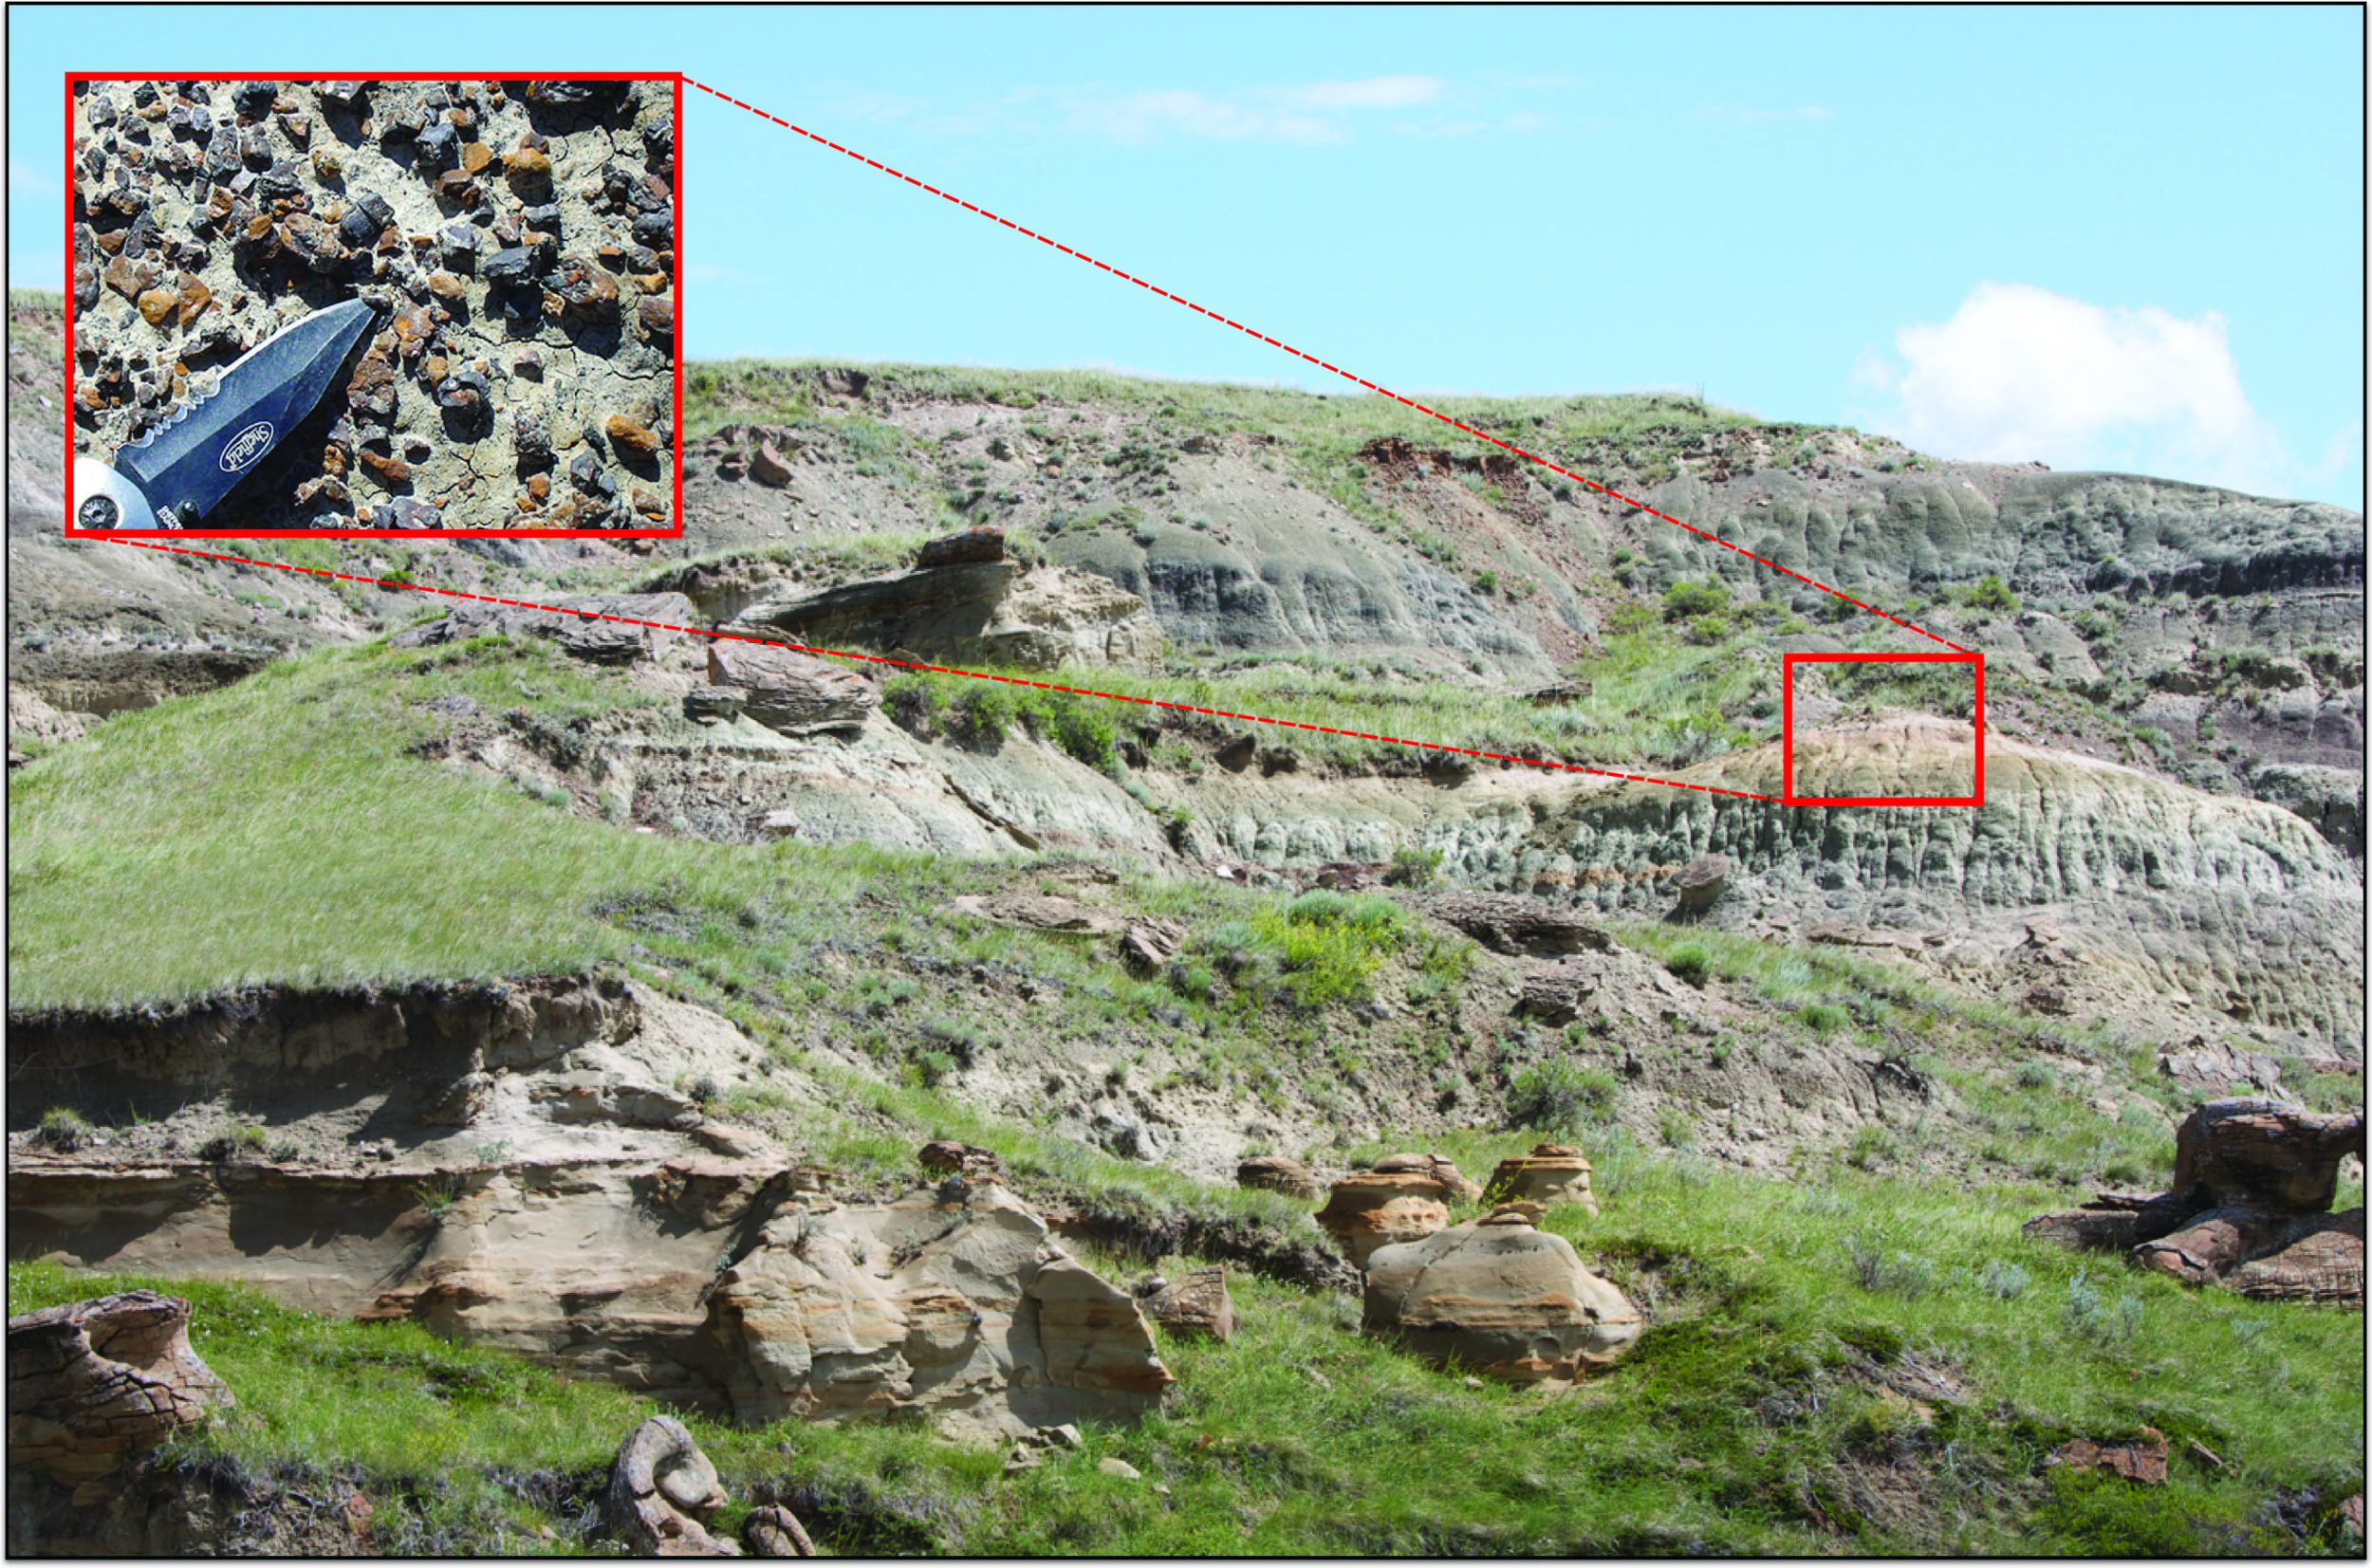 A microsite in the Oldman Formation of Alberta, Canada